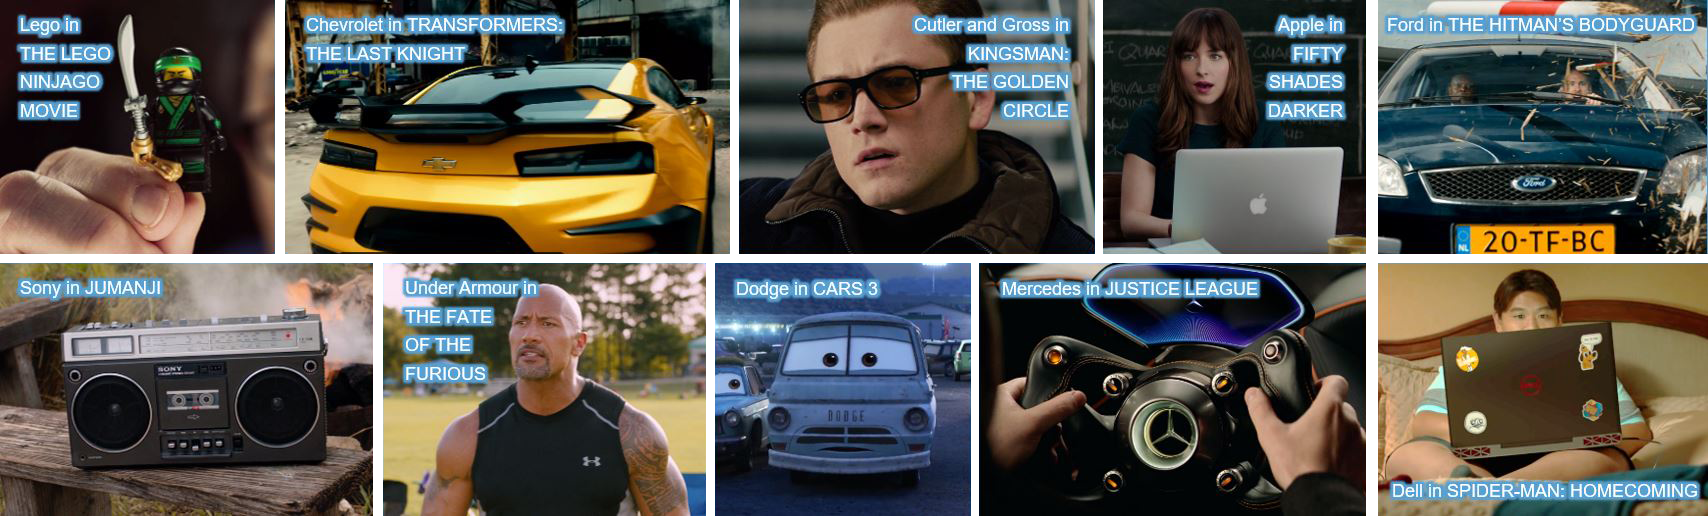 concave brand tracking product placement leog the lego ninjago movie chevrolet transformers the last knight cutler and gross kingsman the golden circle apple fifty shades of grey ford the hitman's bodyguard sony jumanji under armour the fate of the furious dodge cars 3 mercedes justice leageu dell spider man spiderman homecoming